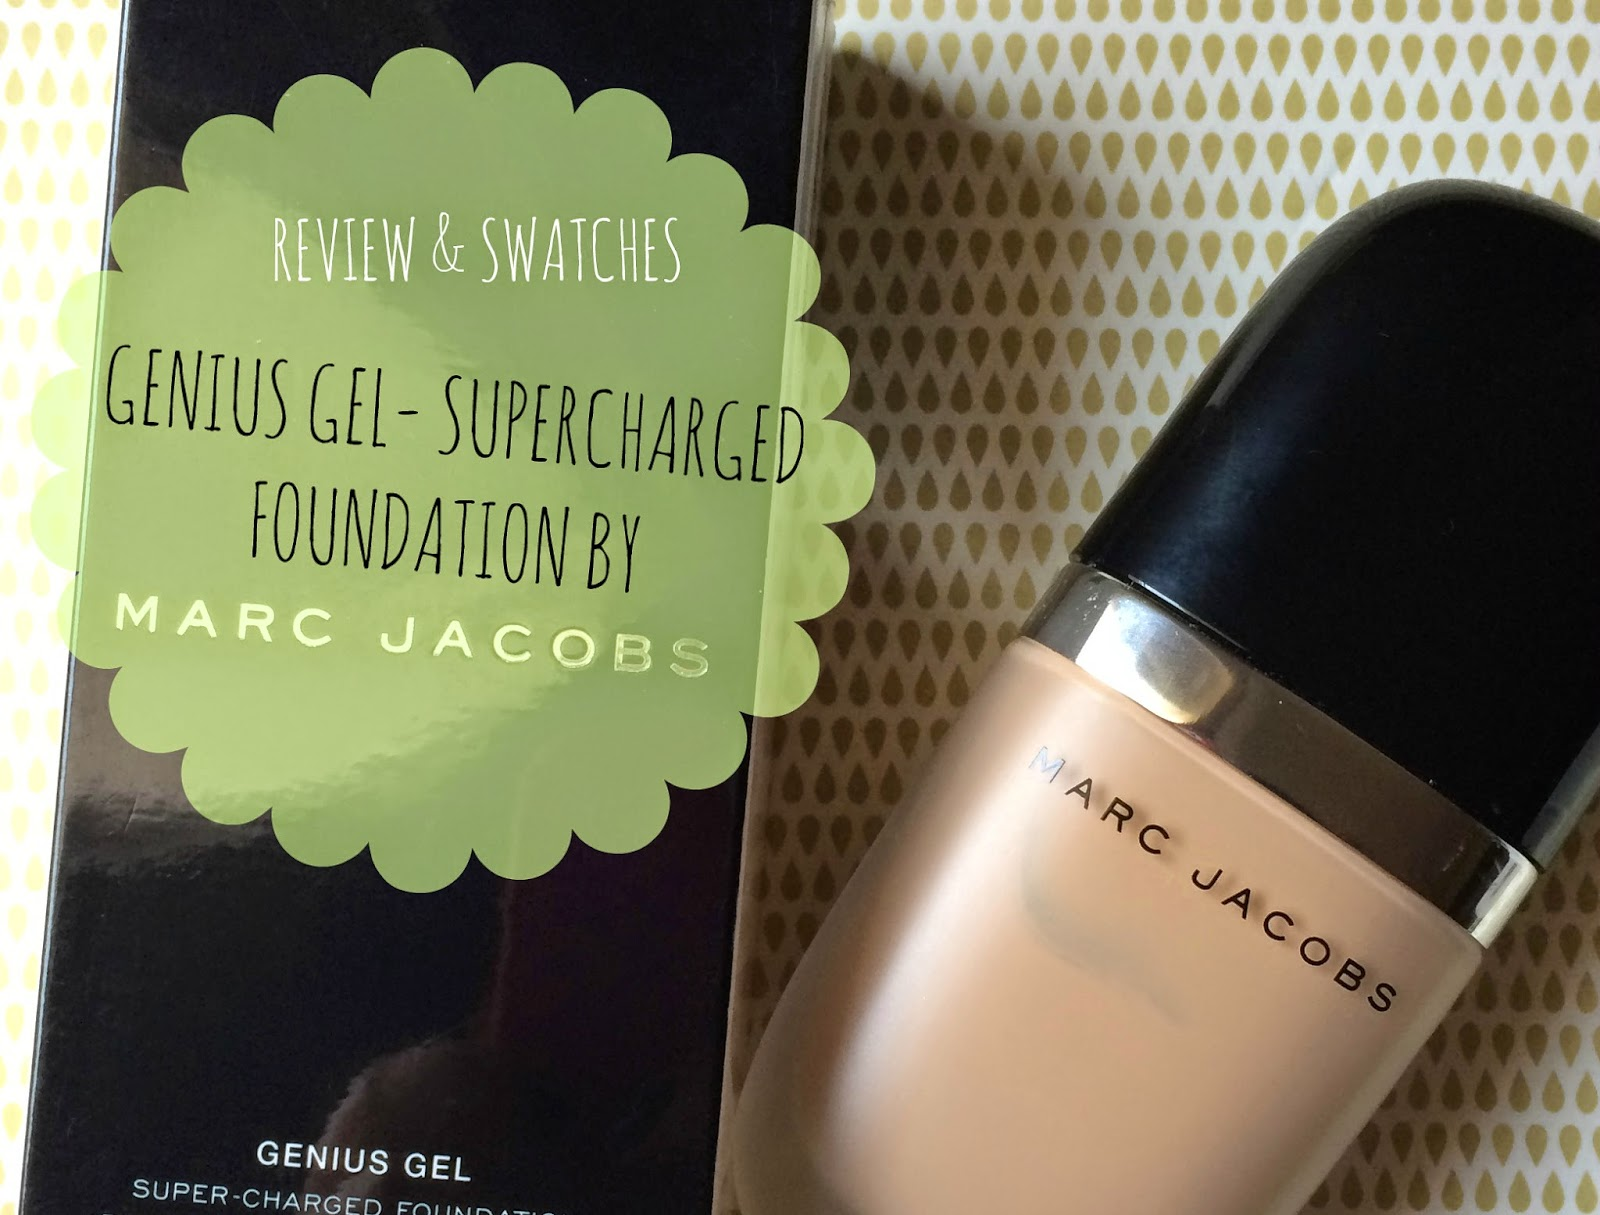 414d5e422bca1 MARC JACOBS  GENIUS GEL - SUPERCHARGED, OIL FREE FOUNDATION REVIEW+SWATCHES.